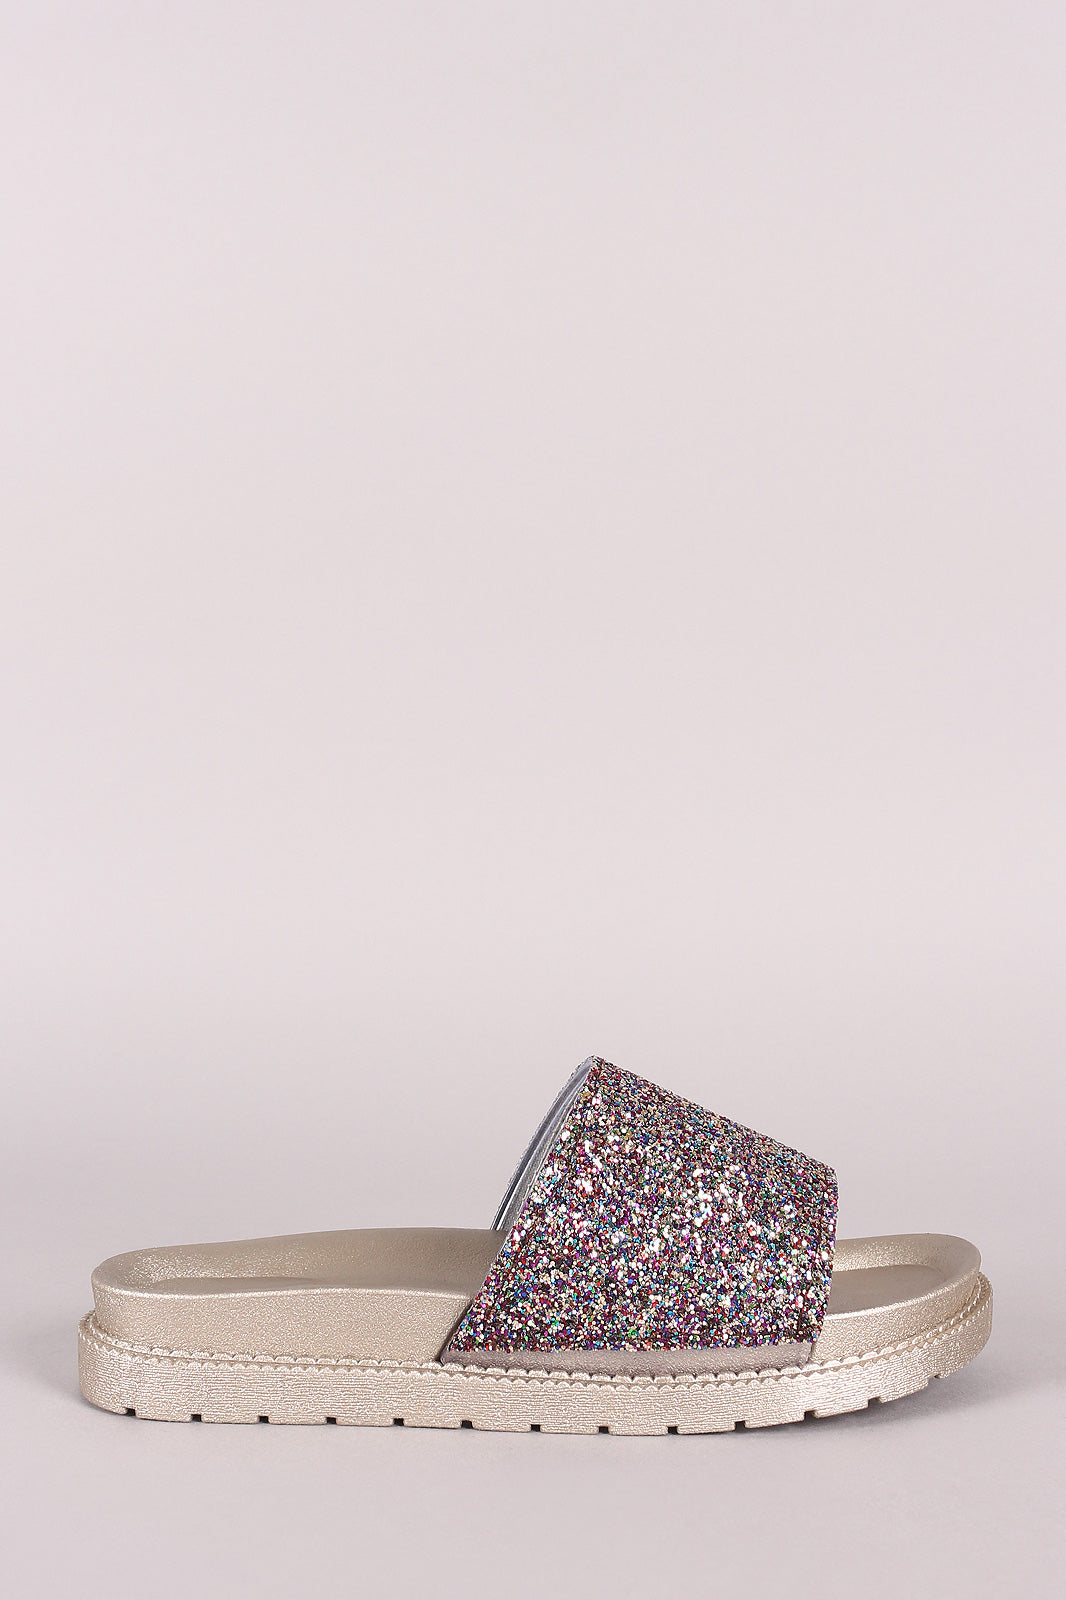 Jenna Open Toe Glitter Encrusted Band Flatform Slide Sandal